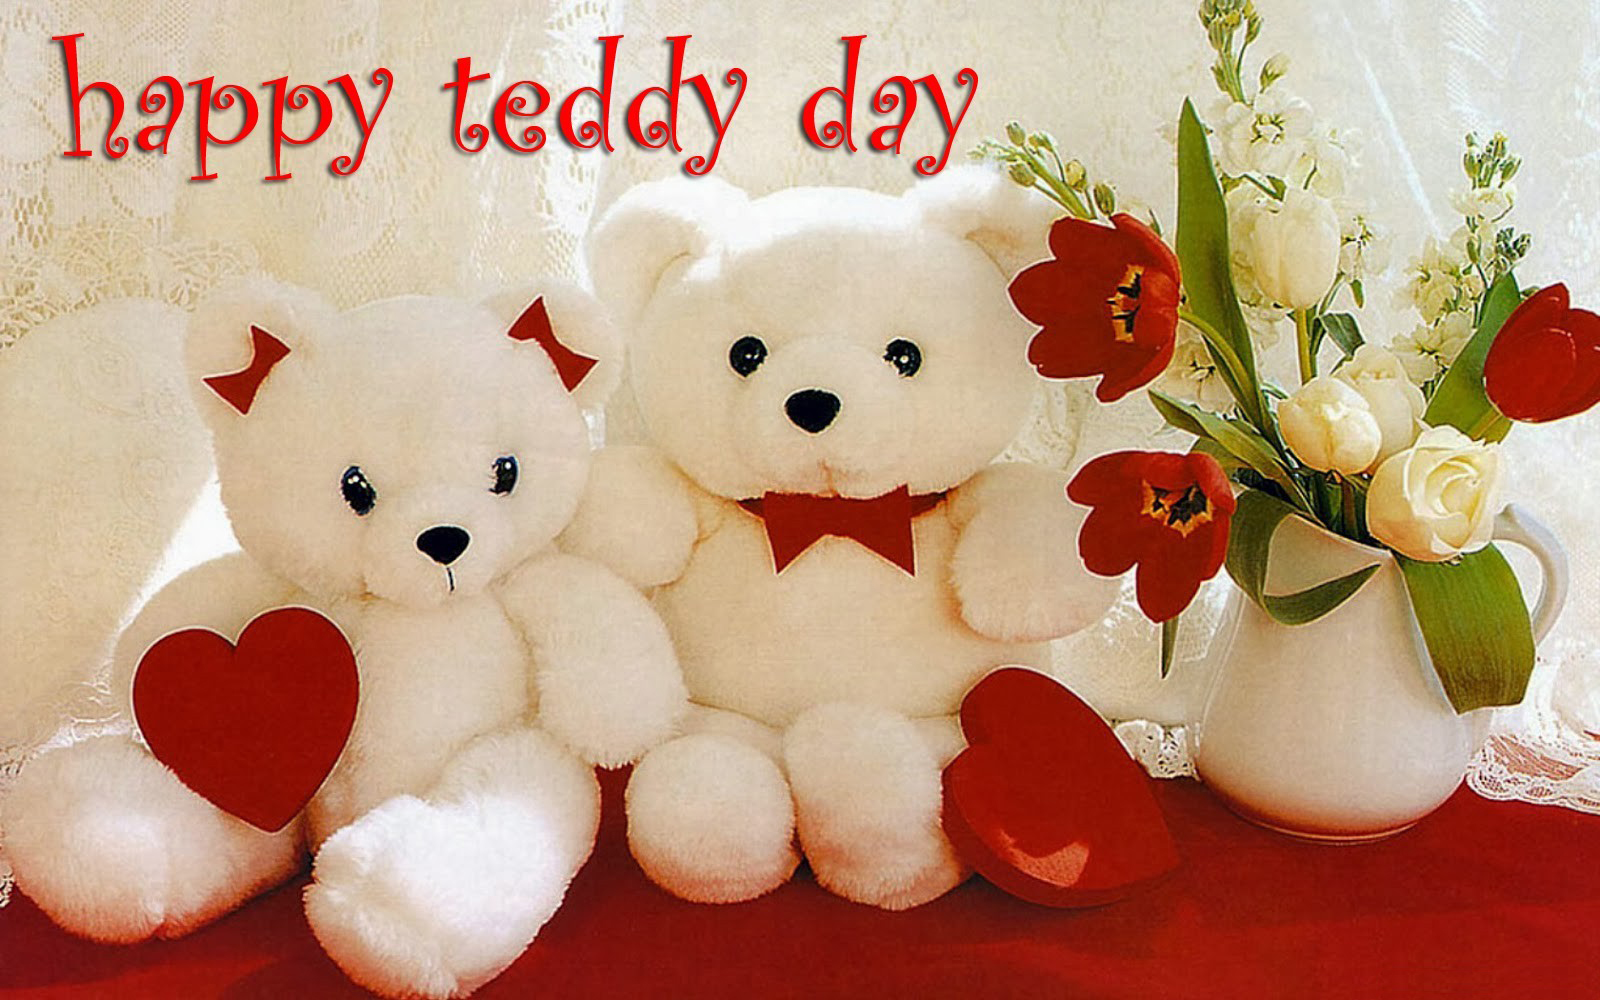 Happy Teddy Day 2017 Images wallpaers pictures (5)